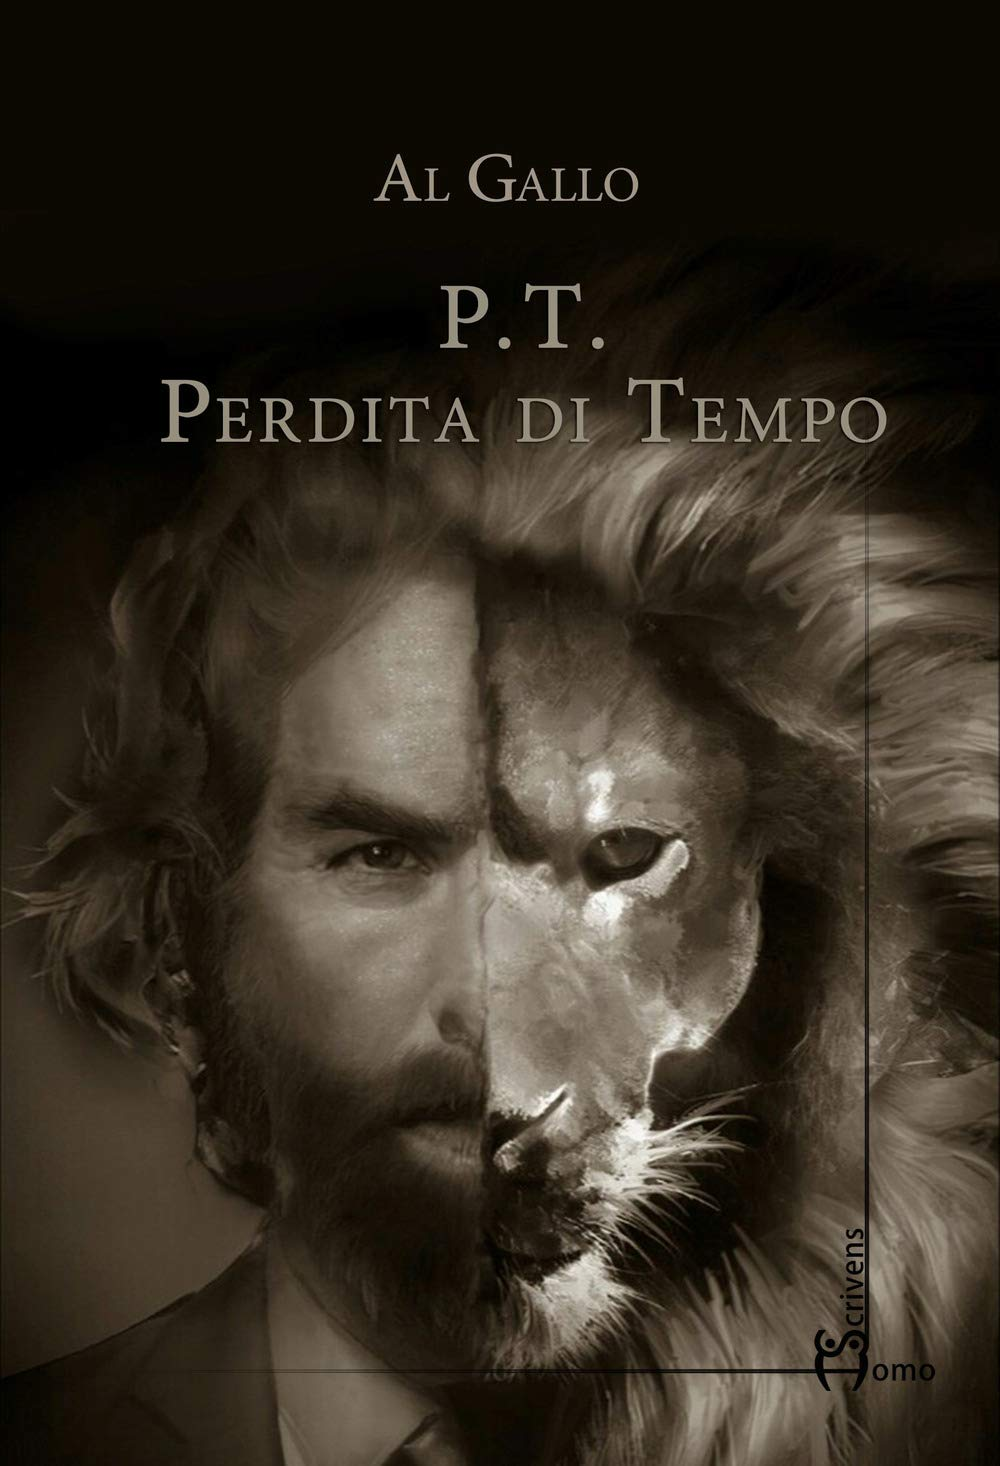 Amazon.it: P.t. Perdita di tempo - Gallo, Al - Libri